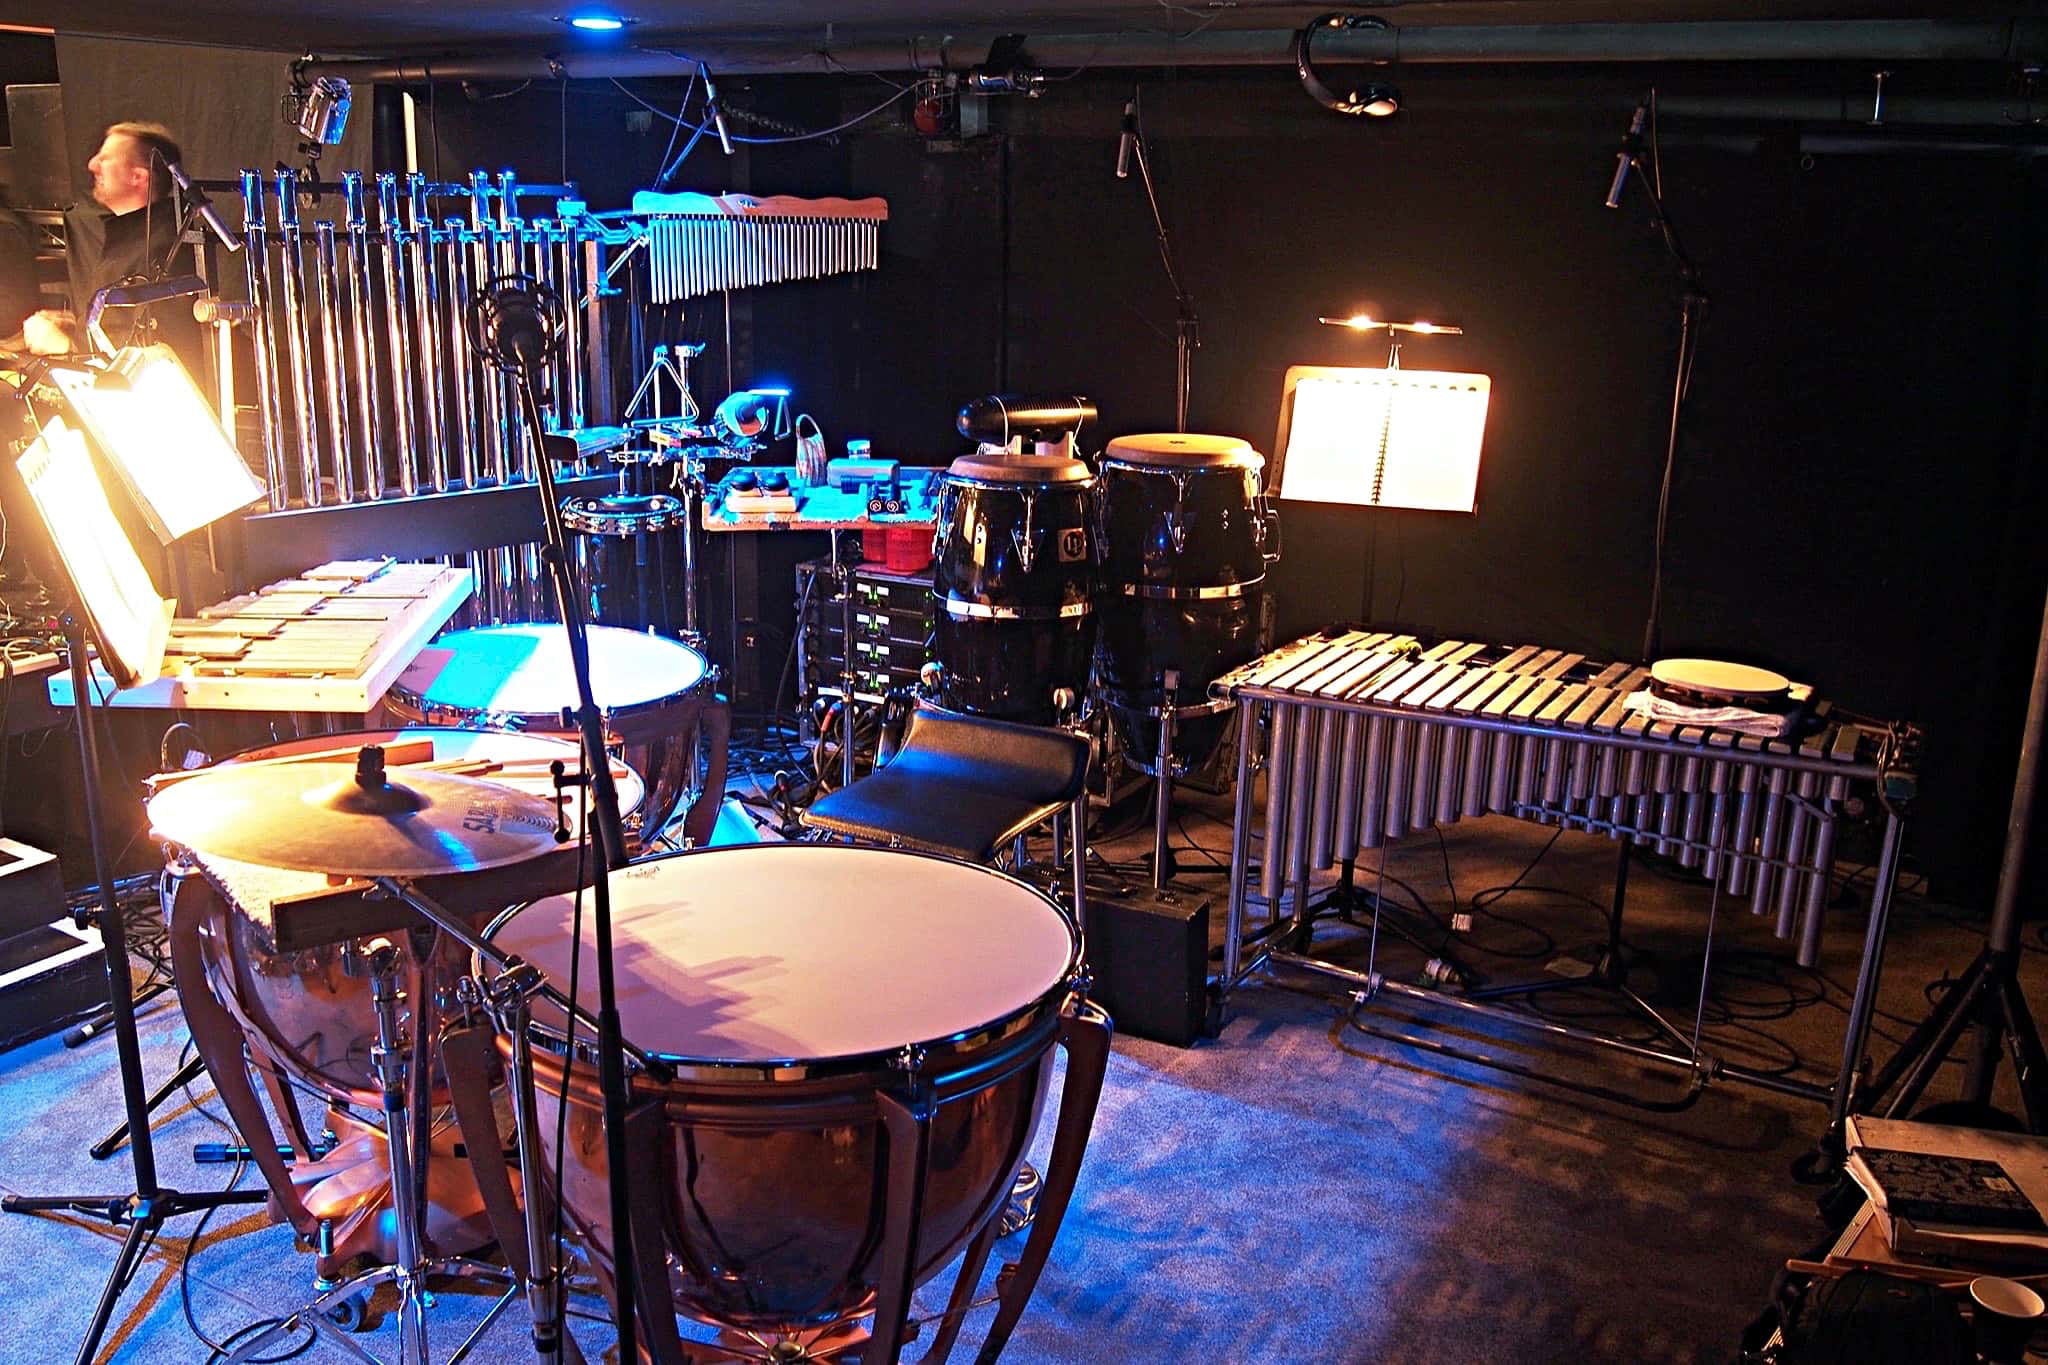 Craig Given's percussion setup for Hairspray at the Isaac Theatre Royal in Christchurch, New Zealand, for Showbiz Christchurch.